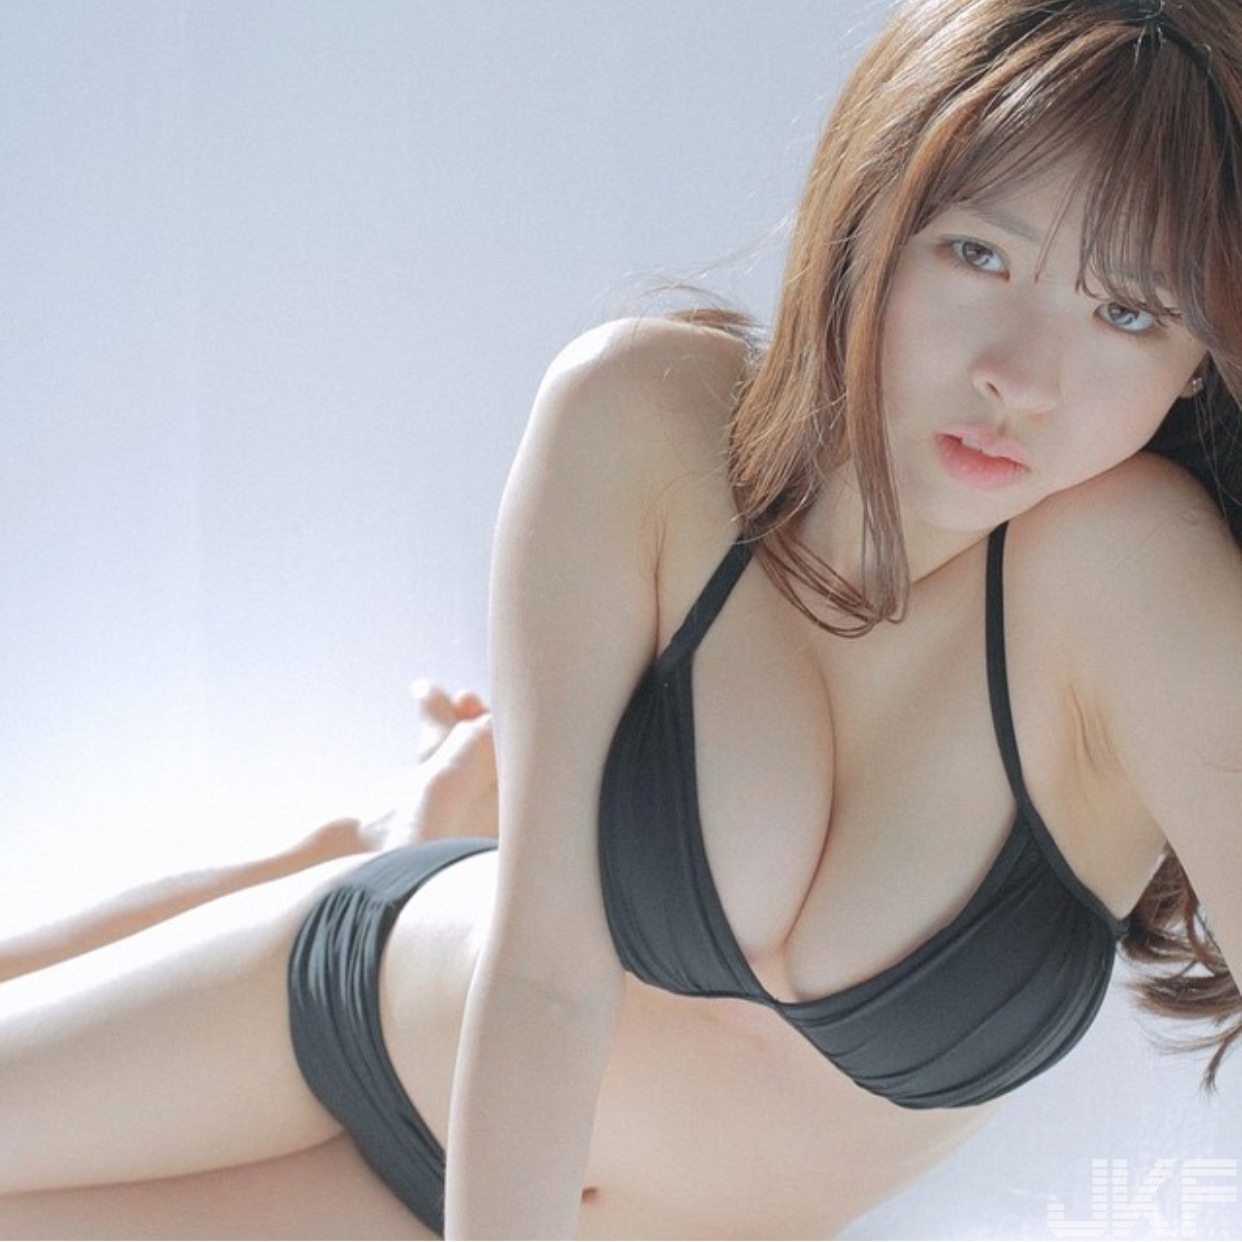 Korean beautiful lingerie model